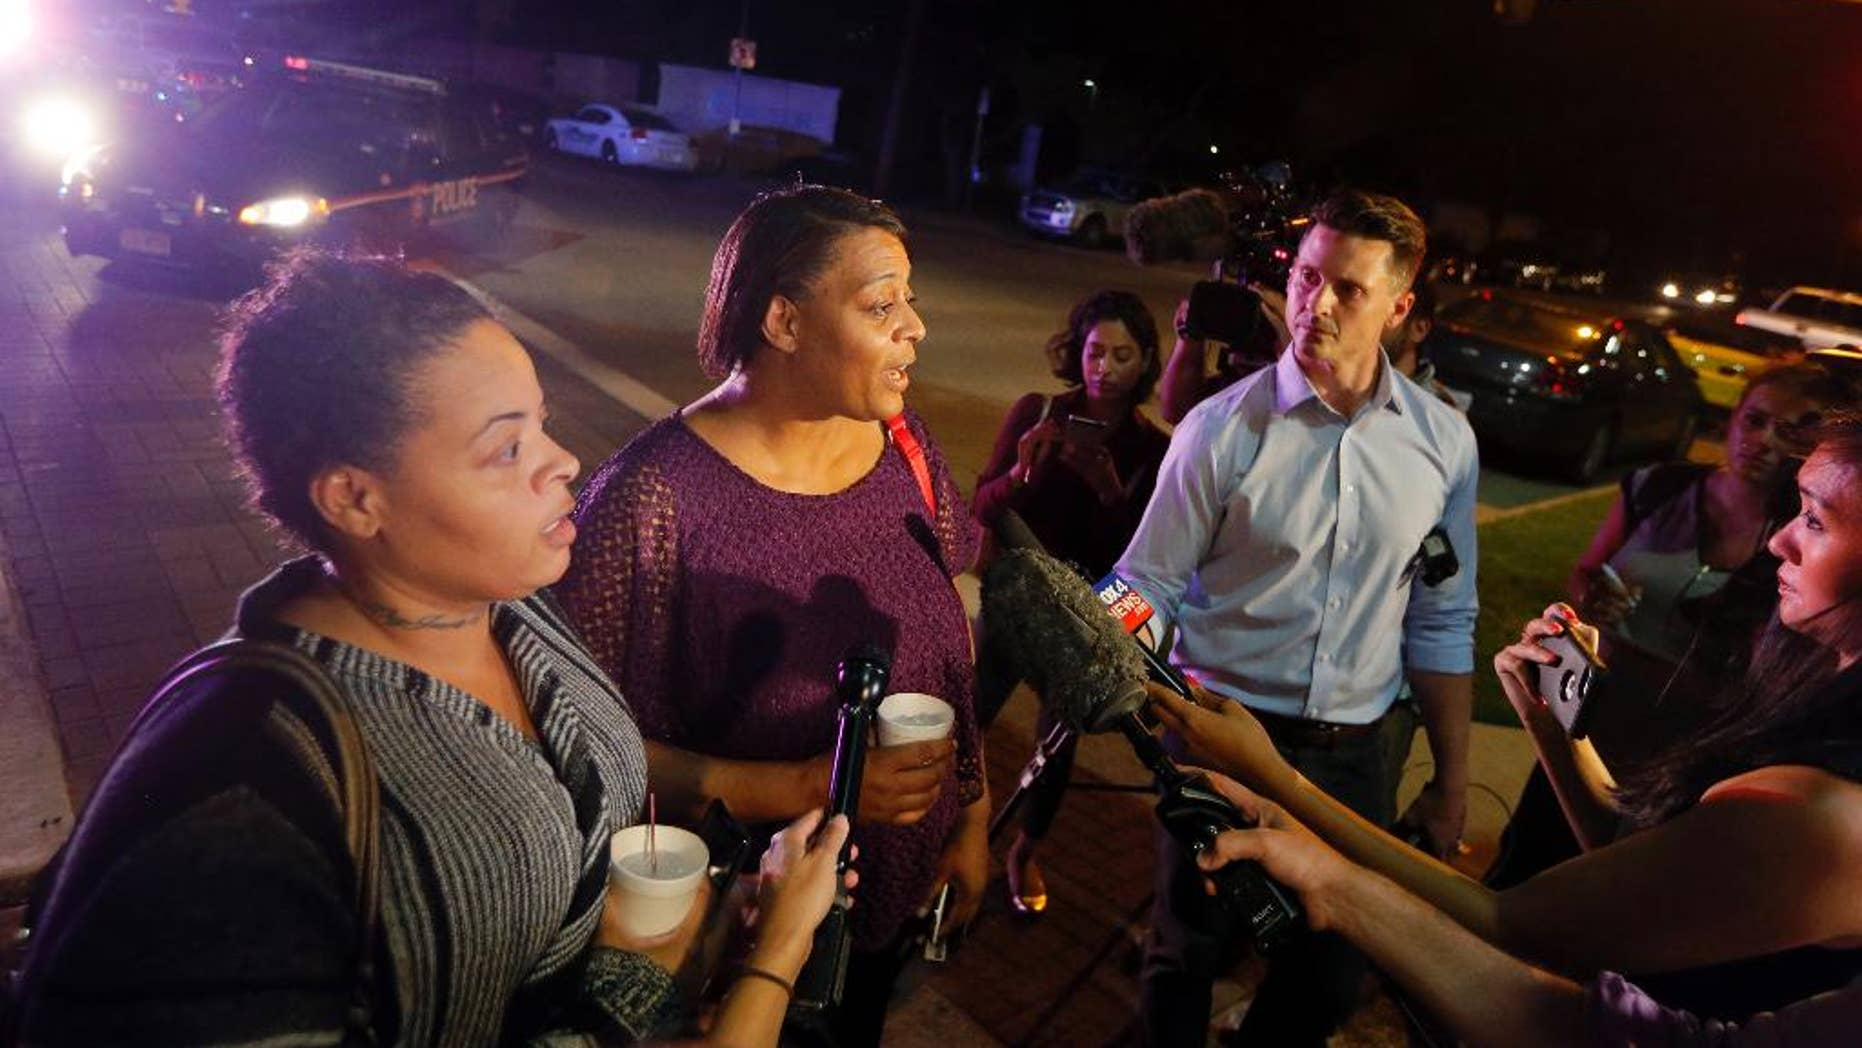 CORRECTS SPELLING TO SHERIE - Sherie Williams, left, and Theresa Williams, center, speak to the media as they leave the Baylor University Medical Center, Friday, July 8, 2016, in Dallas. Theresa Williams said her sister Shetamia Taylor, who was attending a rally with her four teenage sons in downtown Dallas, was shot in one of her legs. (AP Photo/Tony Gutierrez)